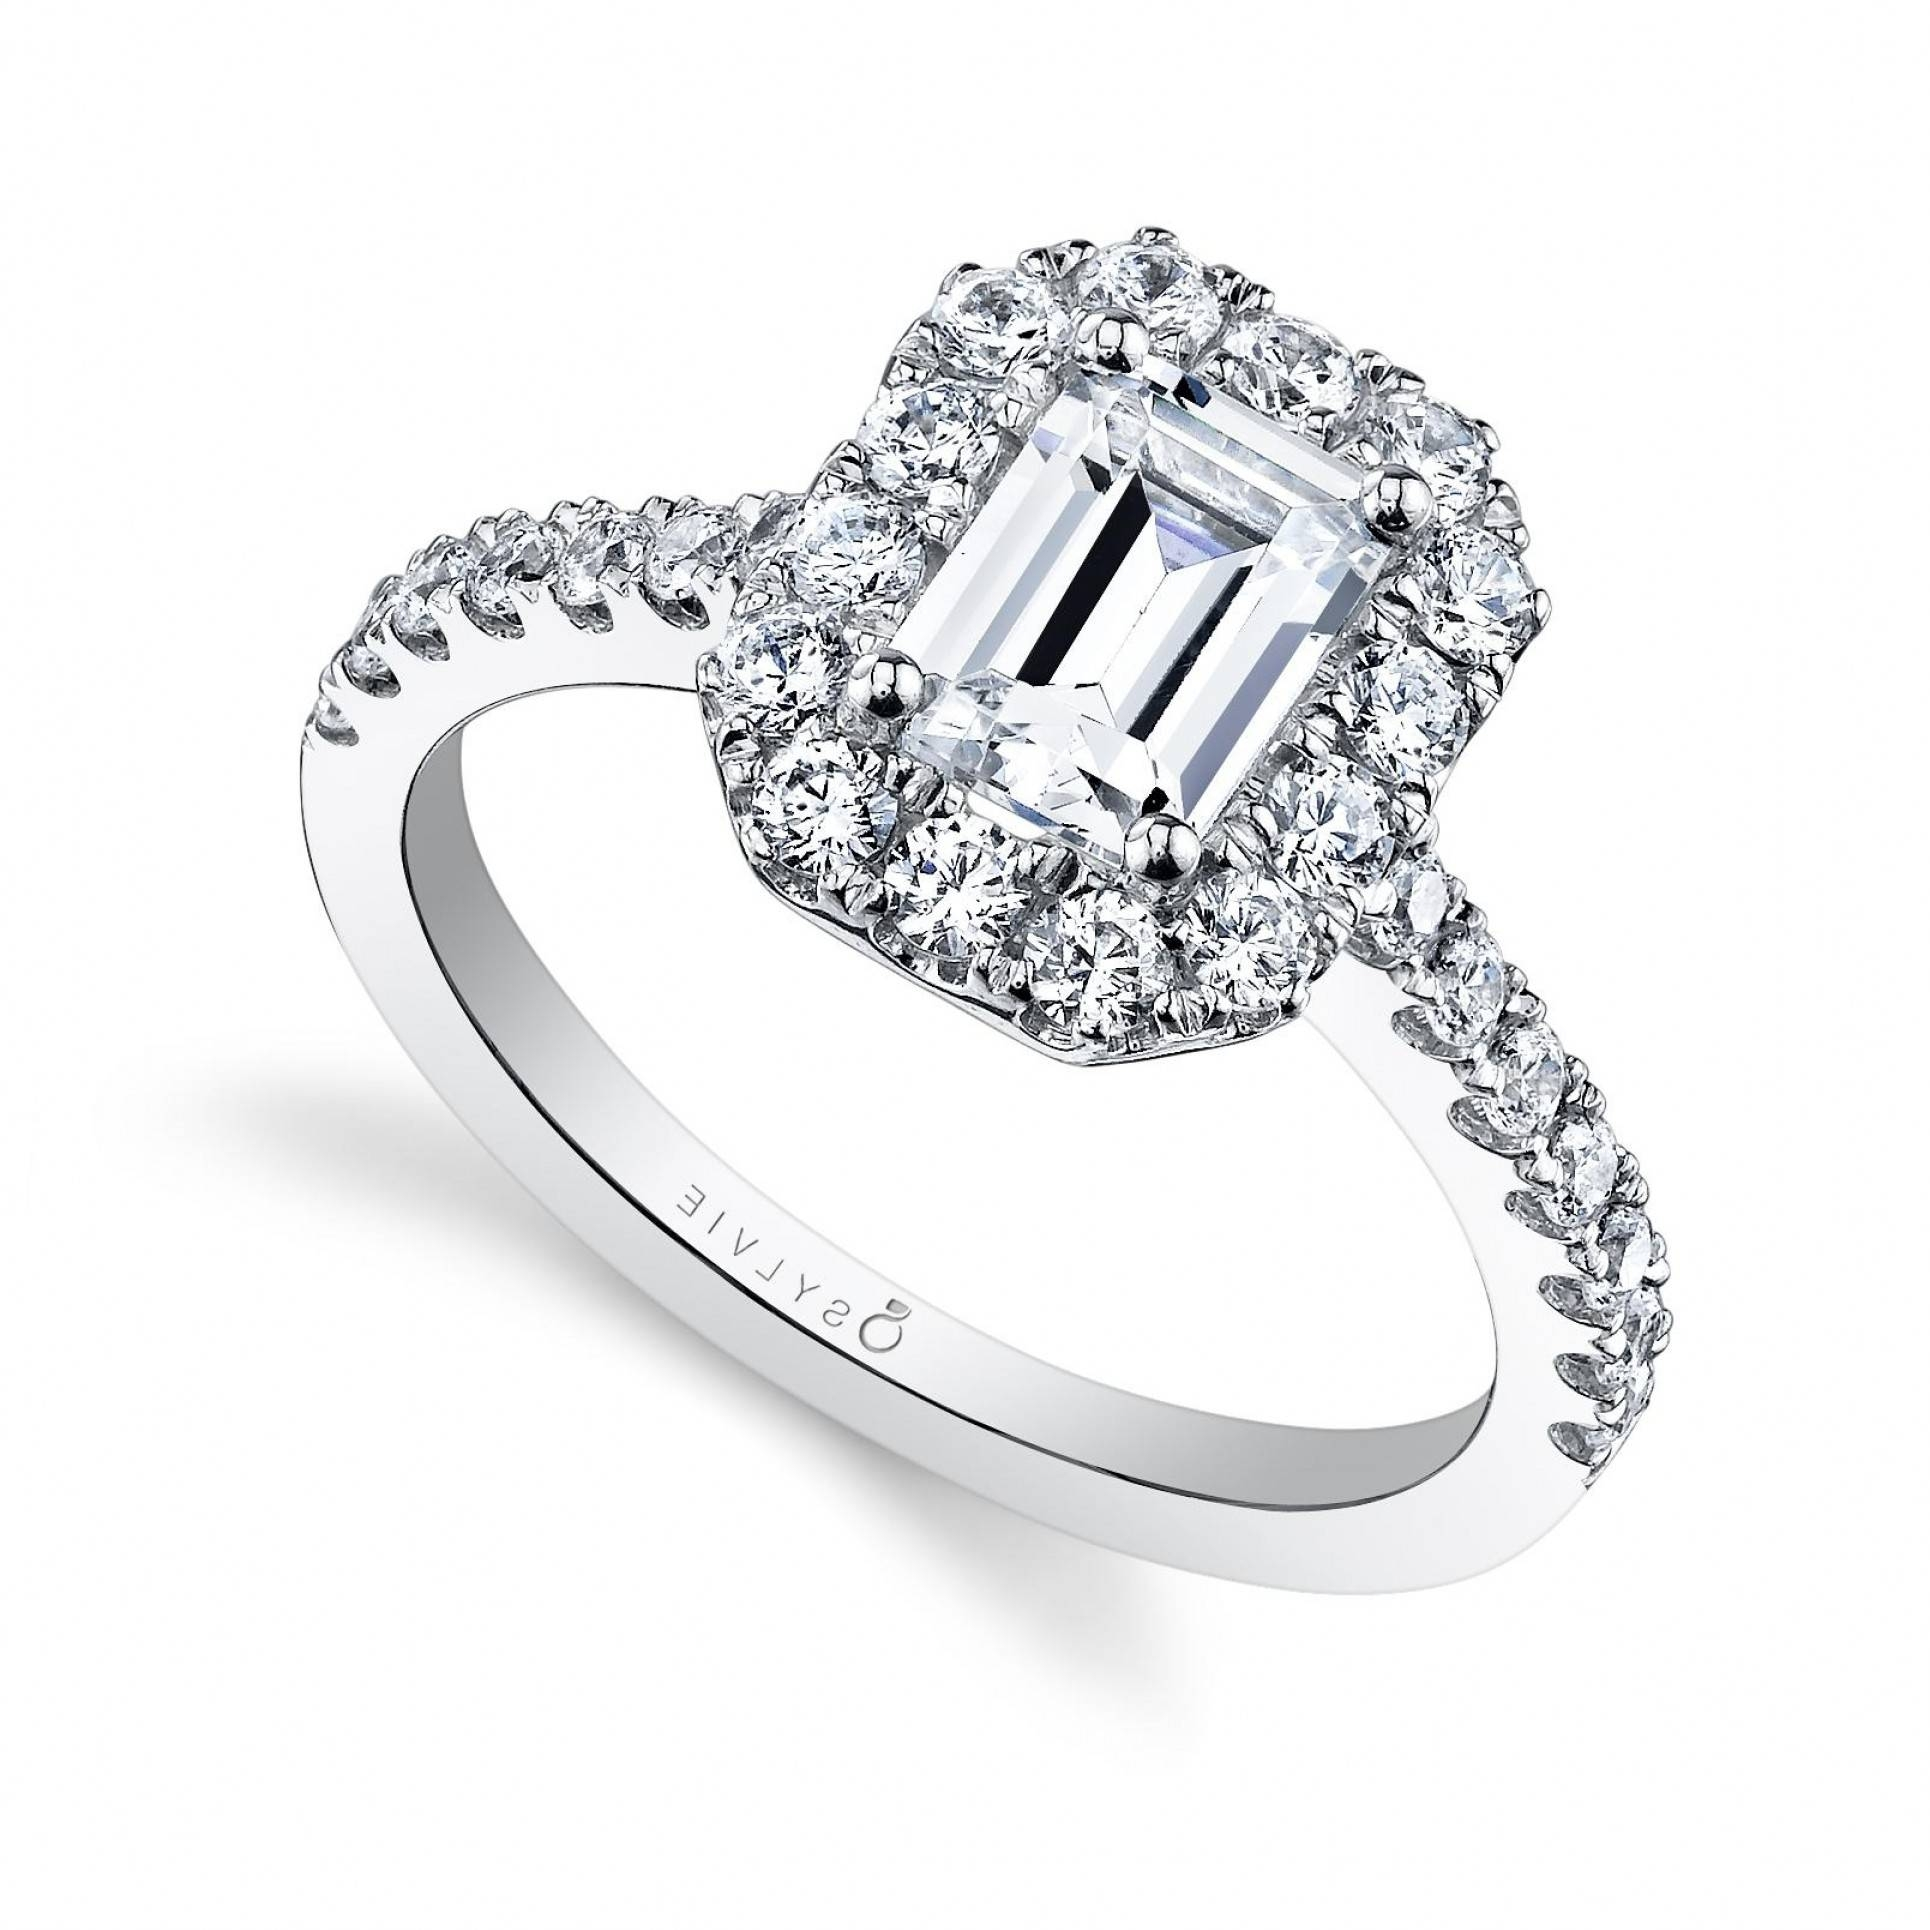 15 Photo Of Zales Engagement Rings For Men